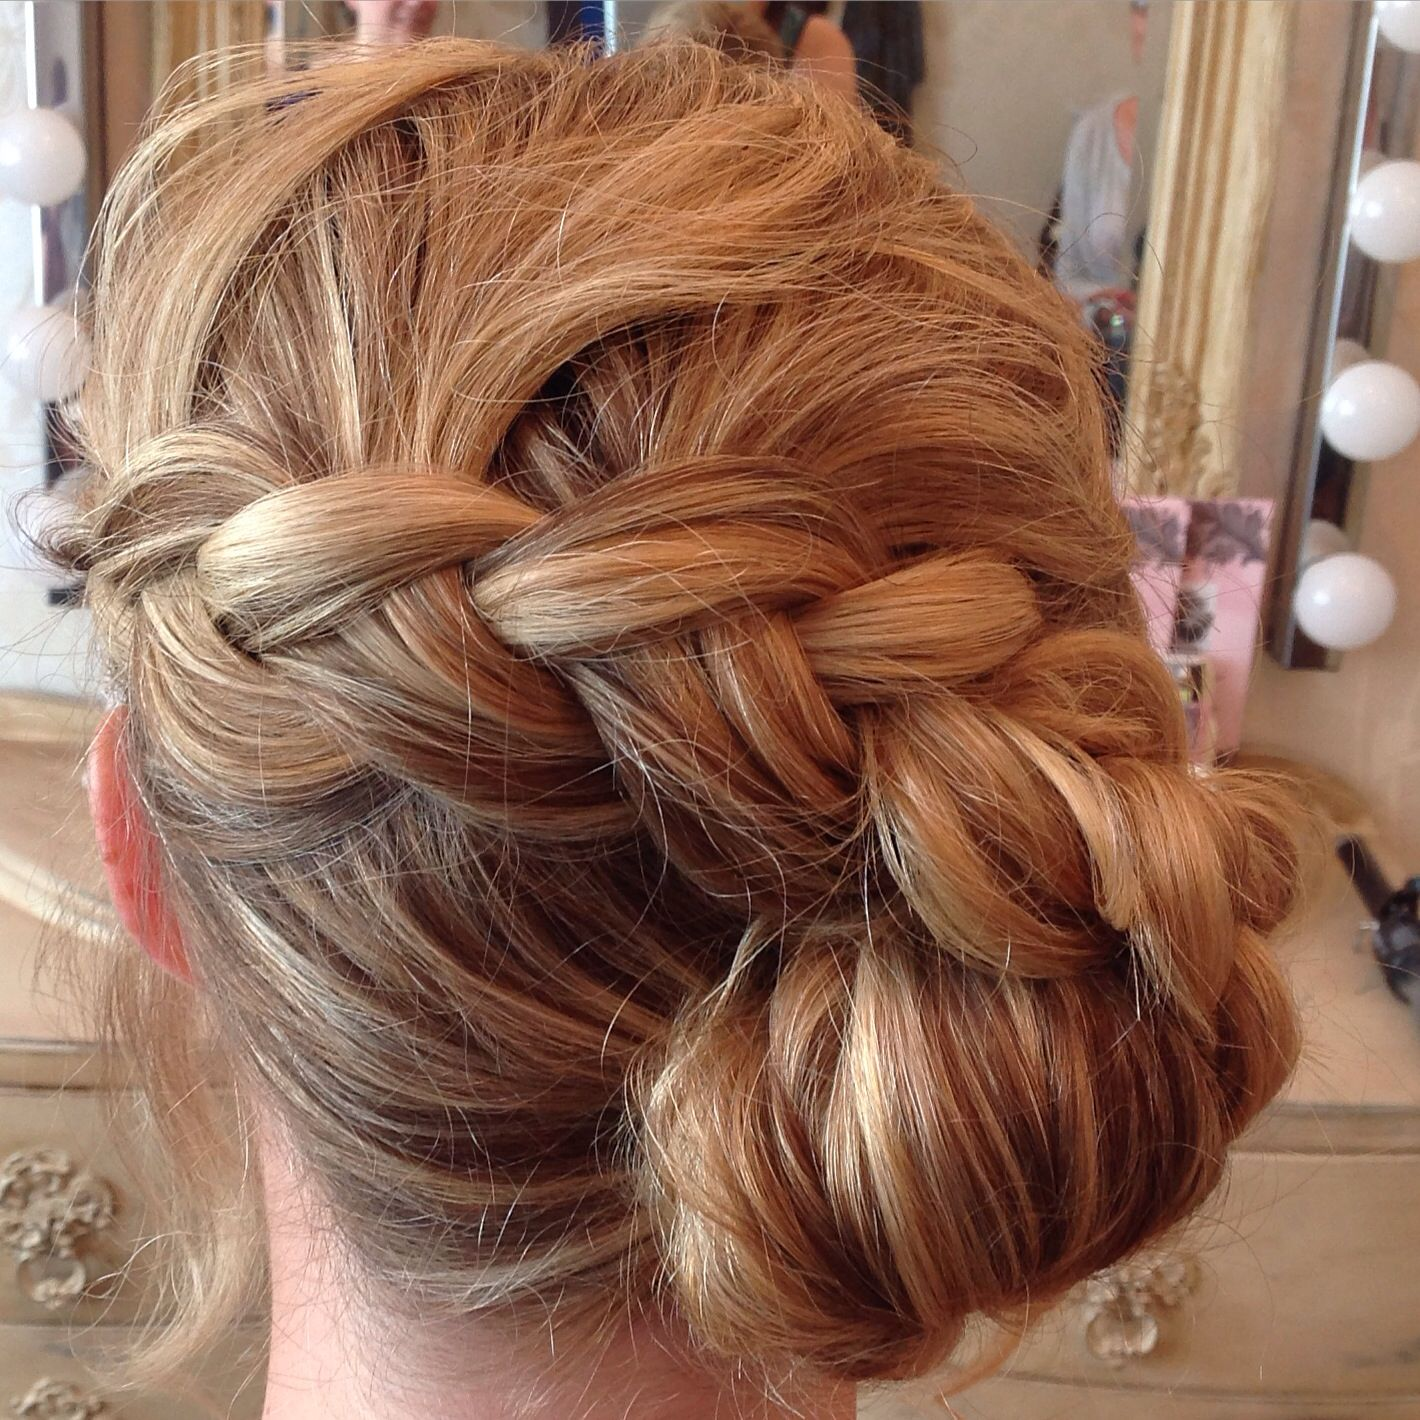 Wedding Hairstyle Roll: Wedding Hairstyle For Bride Or Bridesmaid, Side Bun